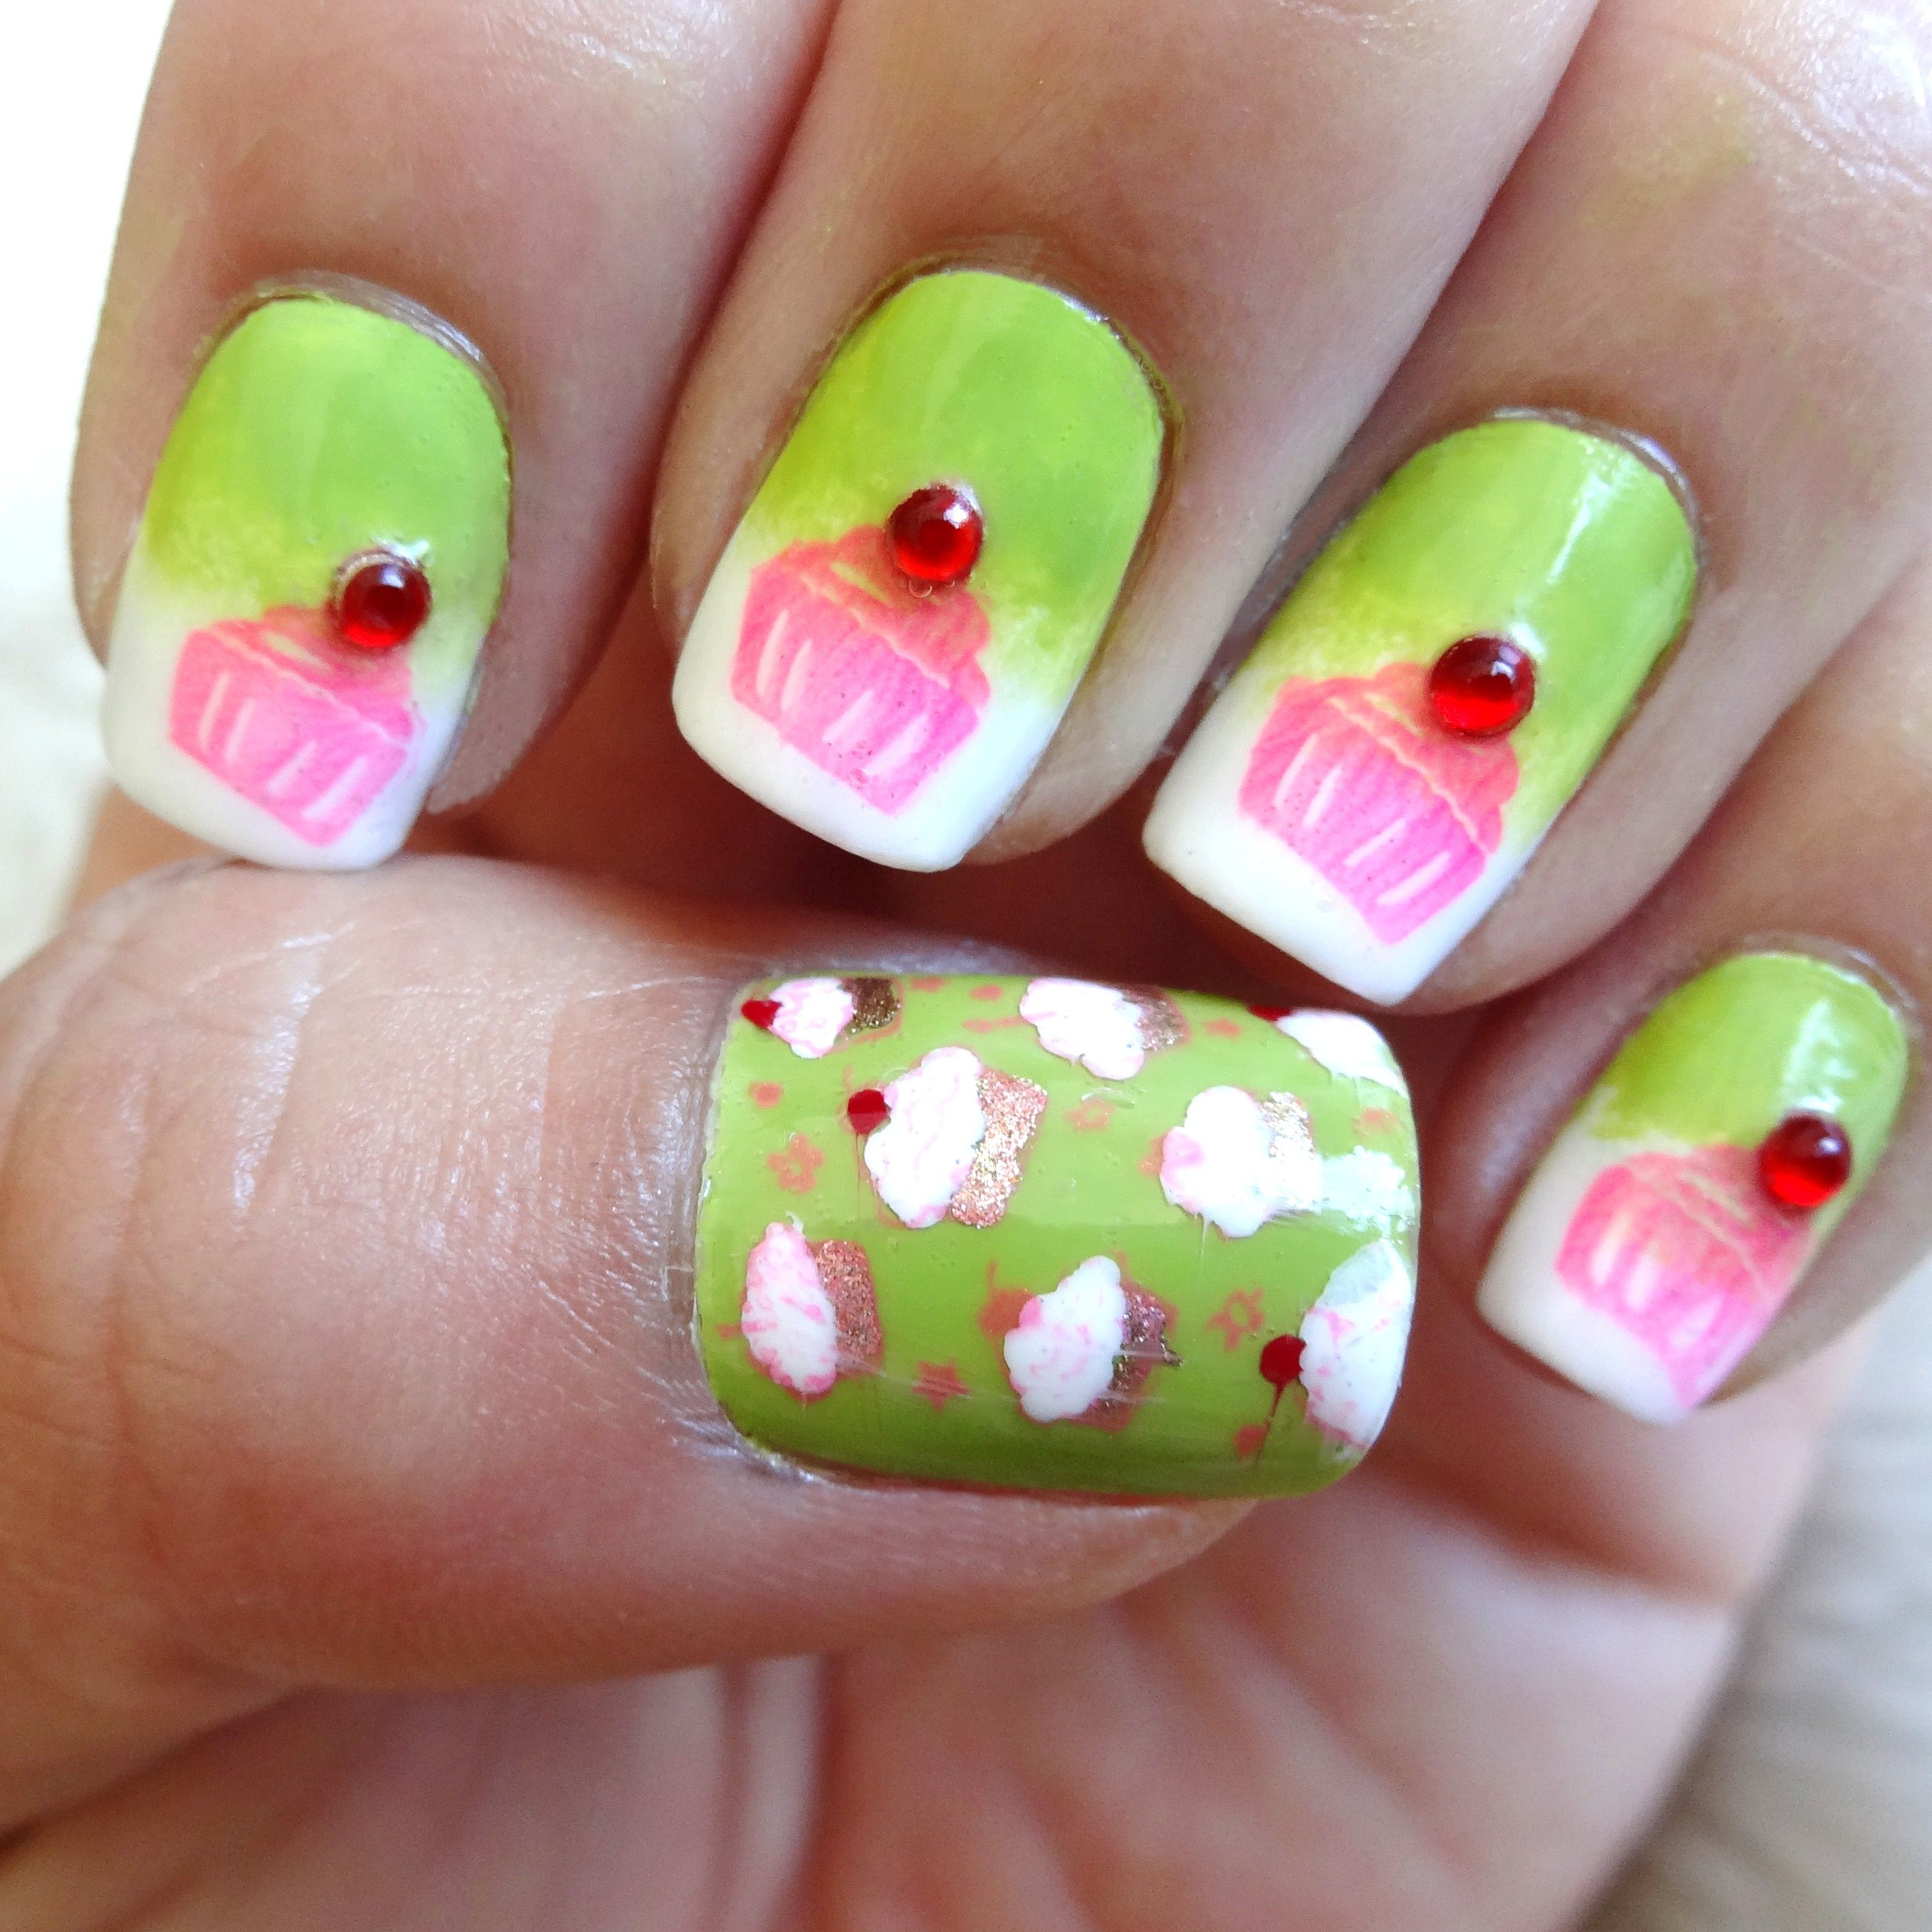 """Cupcake Nail Art. Used Bundle Monster stamping plates BM-H20 and BM14. Polishes used are Sally Hansen """"Green With Envy"""" and Sinful Colors """"Cream Pink."""" #nailart"""